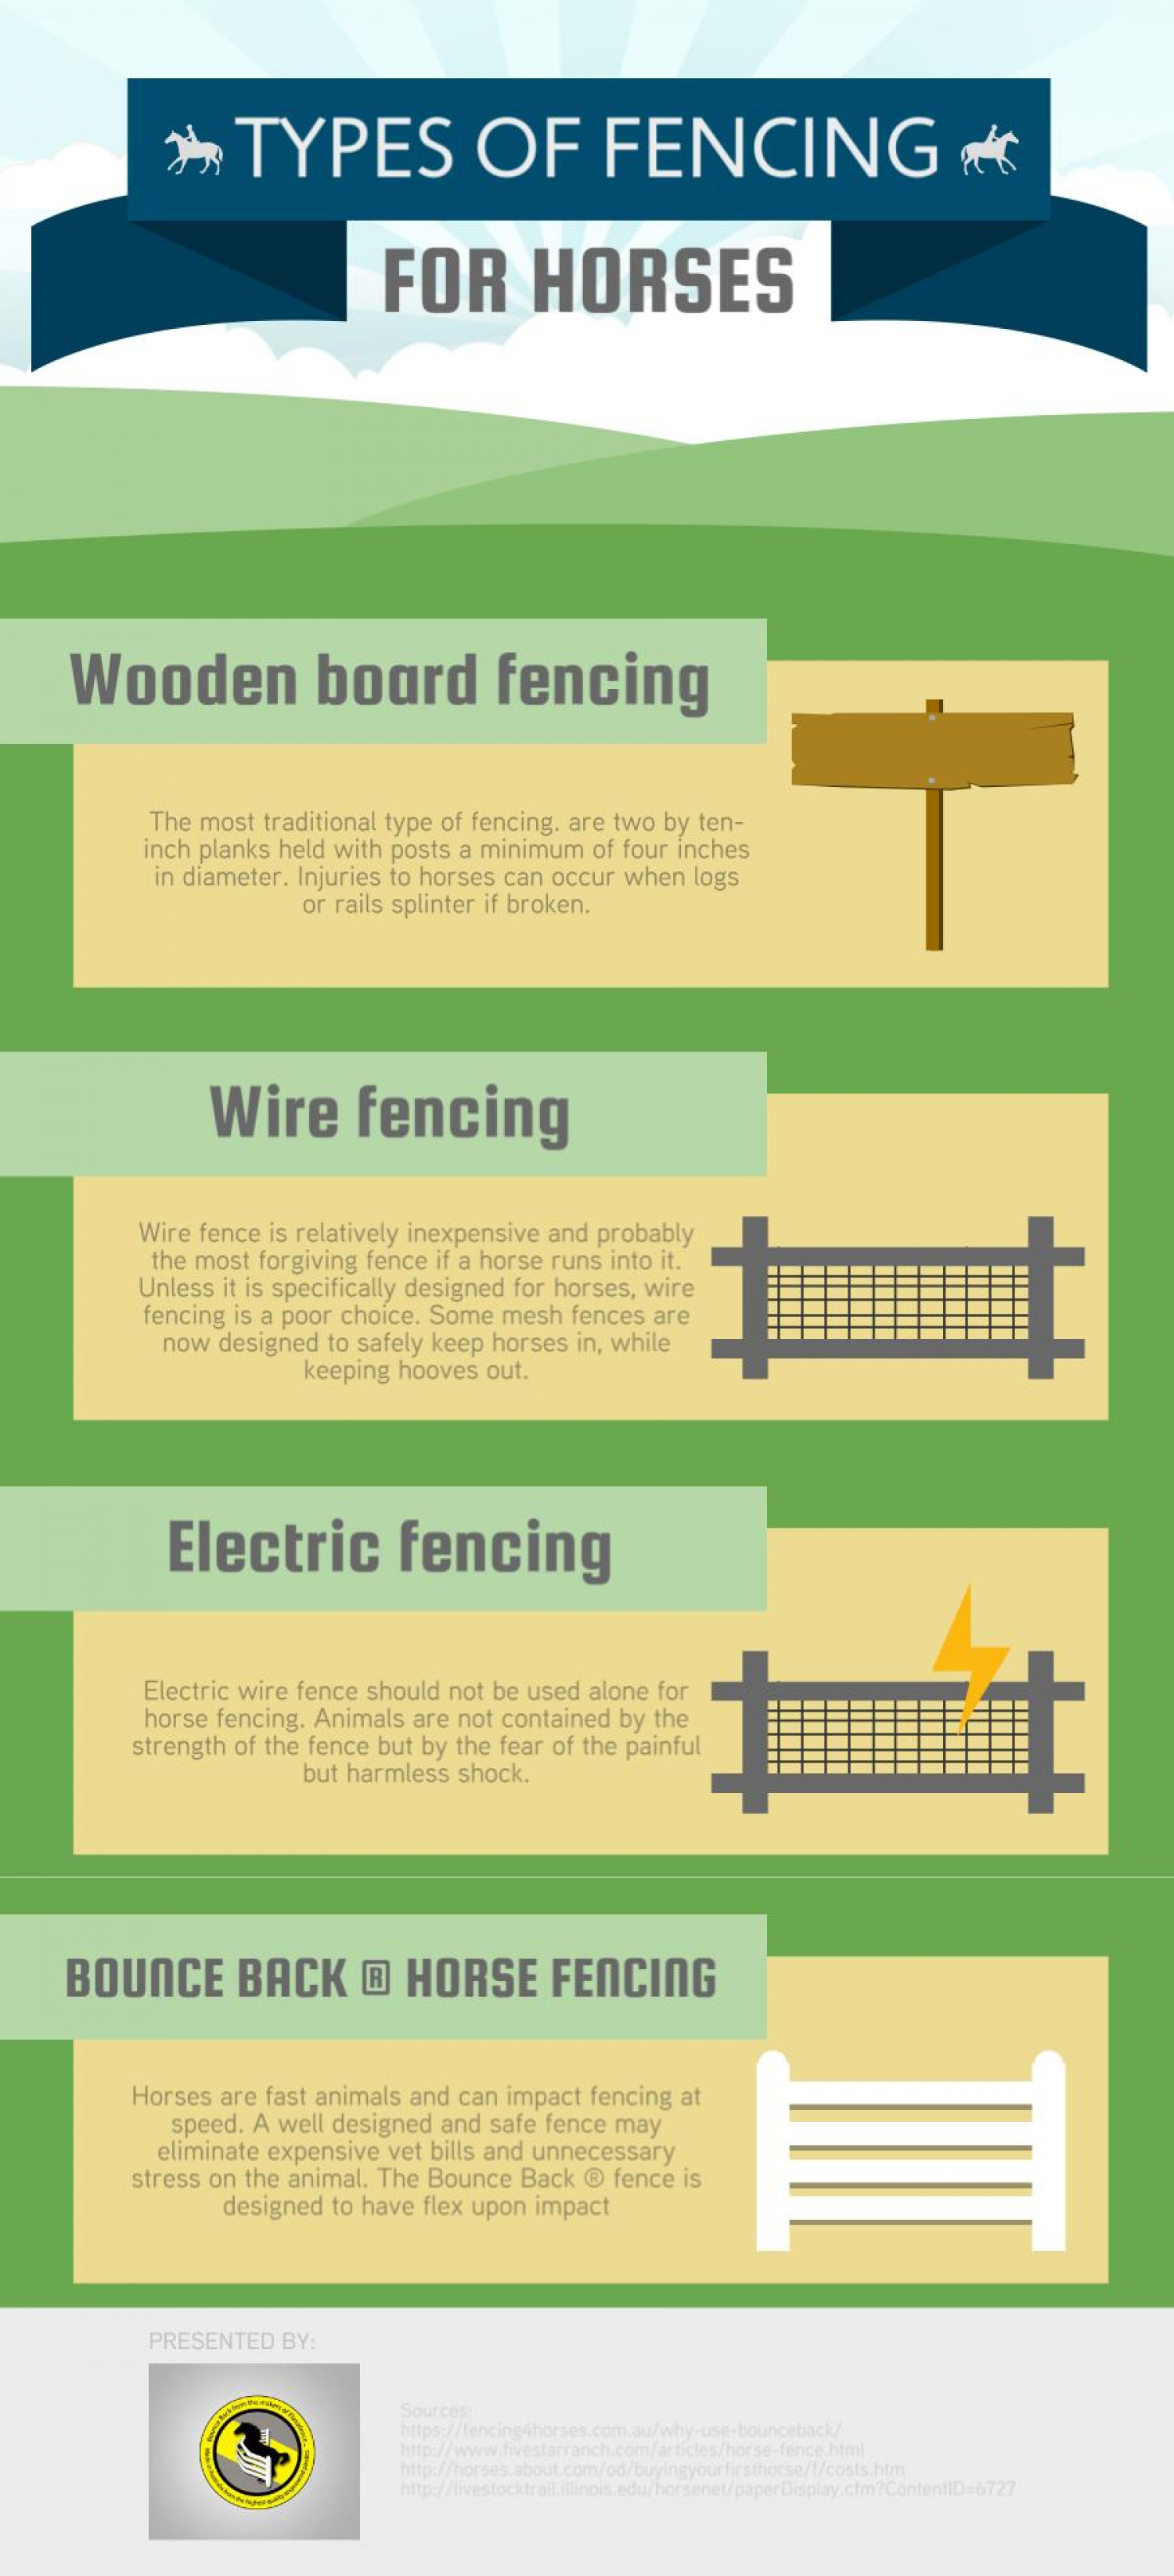 Types of Fencing for Horses | Visual.ly